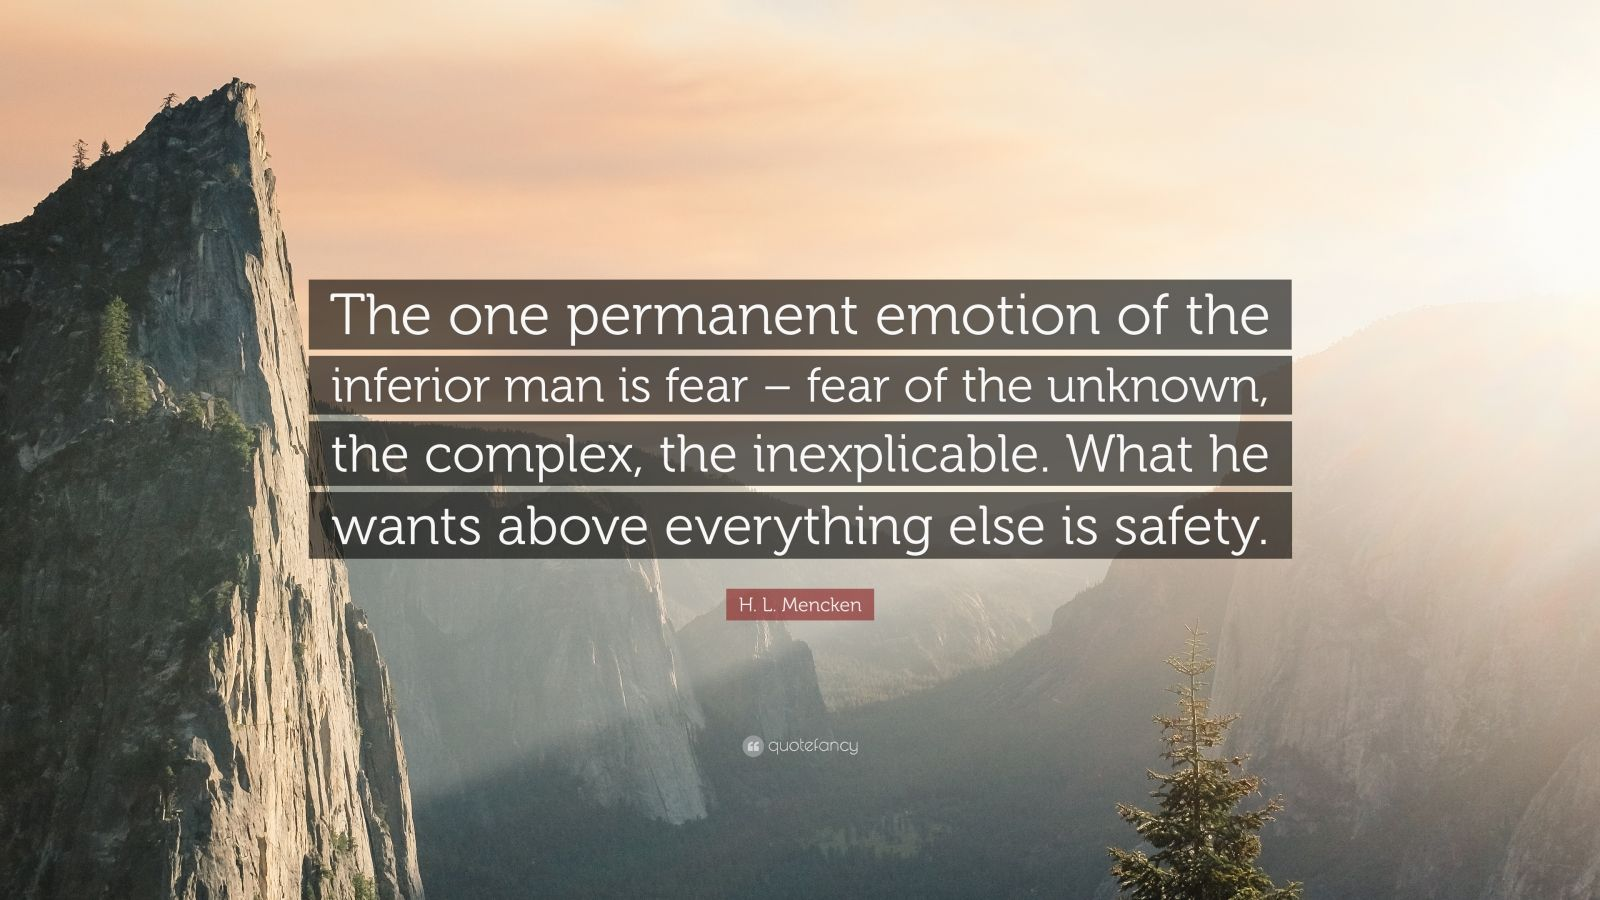 """H. L. Mencken Quote: """"The one permanent emotion of the inferior man is fear – fear of the unknown, the complex, the inexplicable. What he wants above everything else is safety."""""""